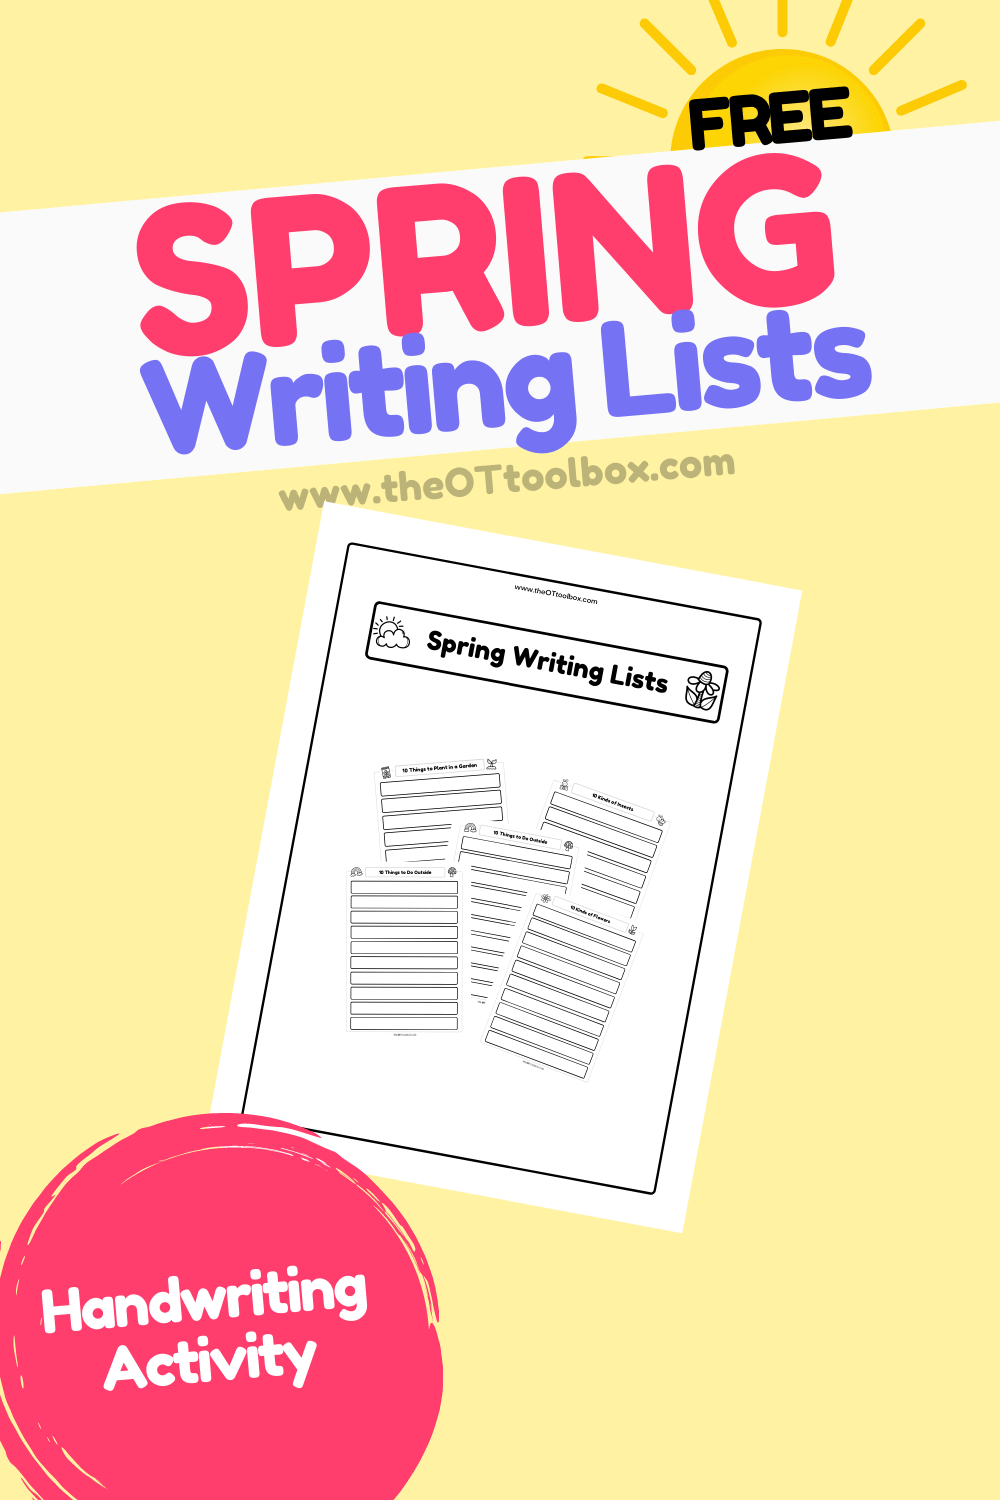 Spring Writing Lists worksheets